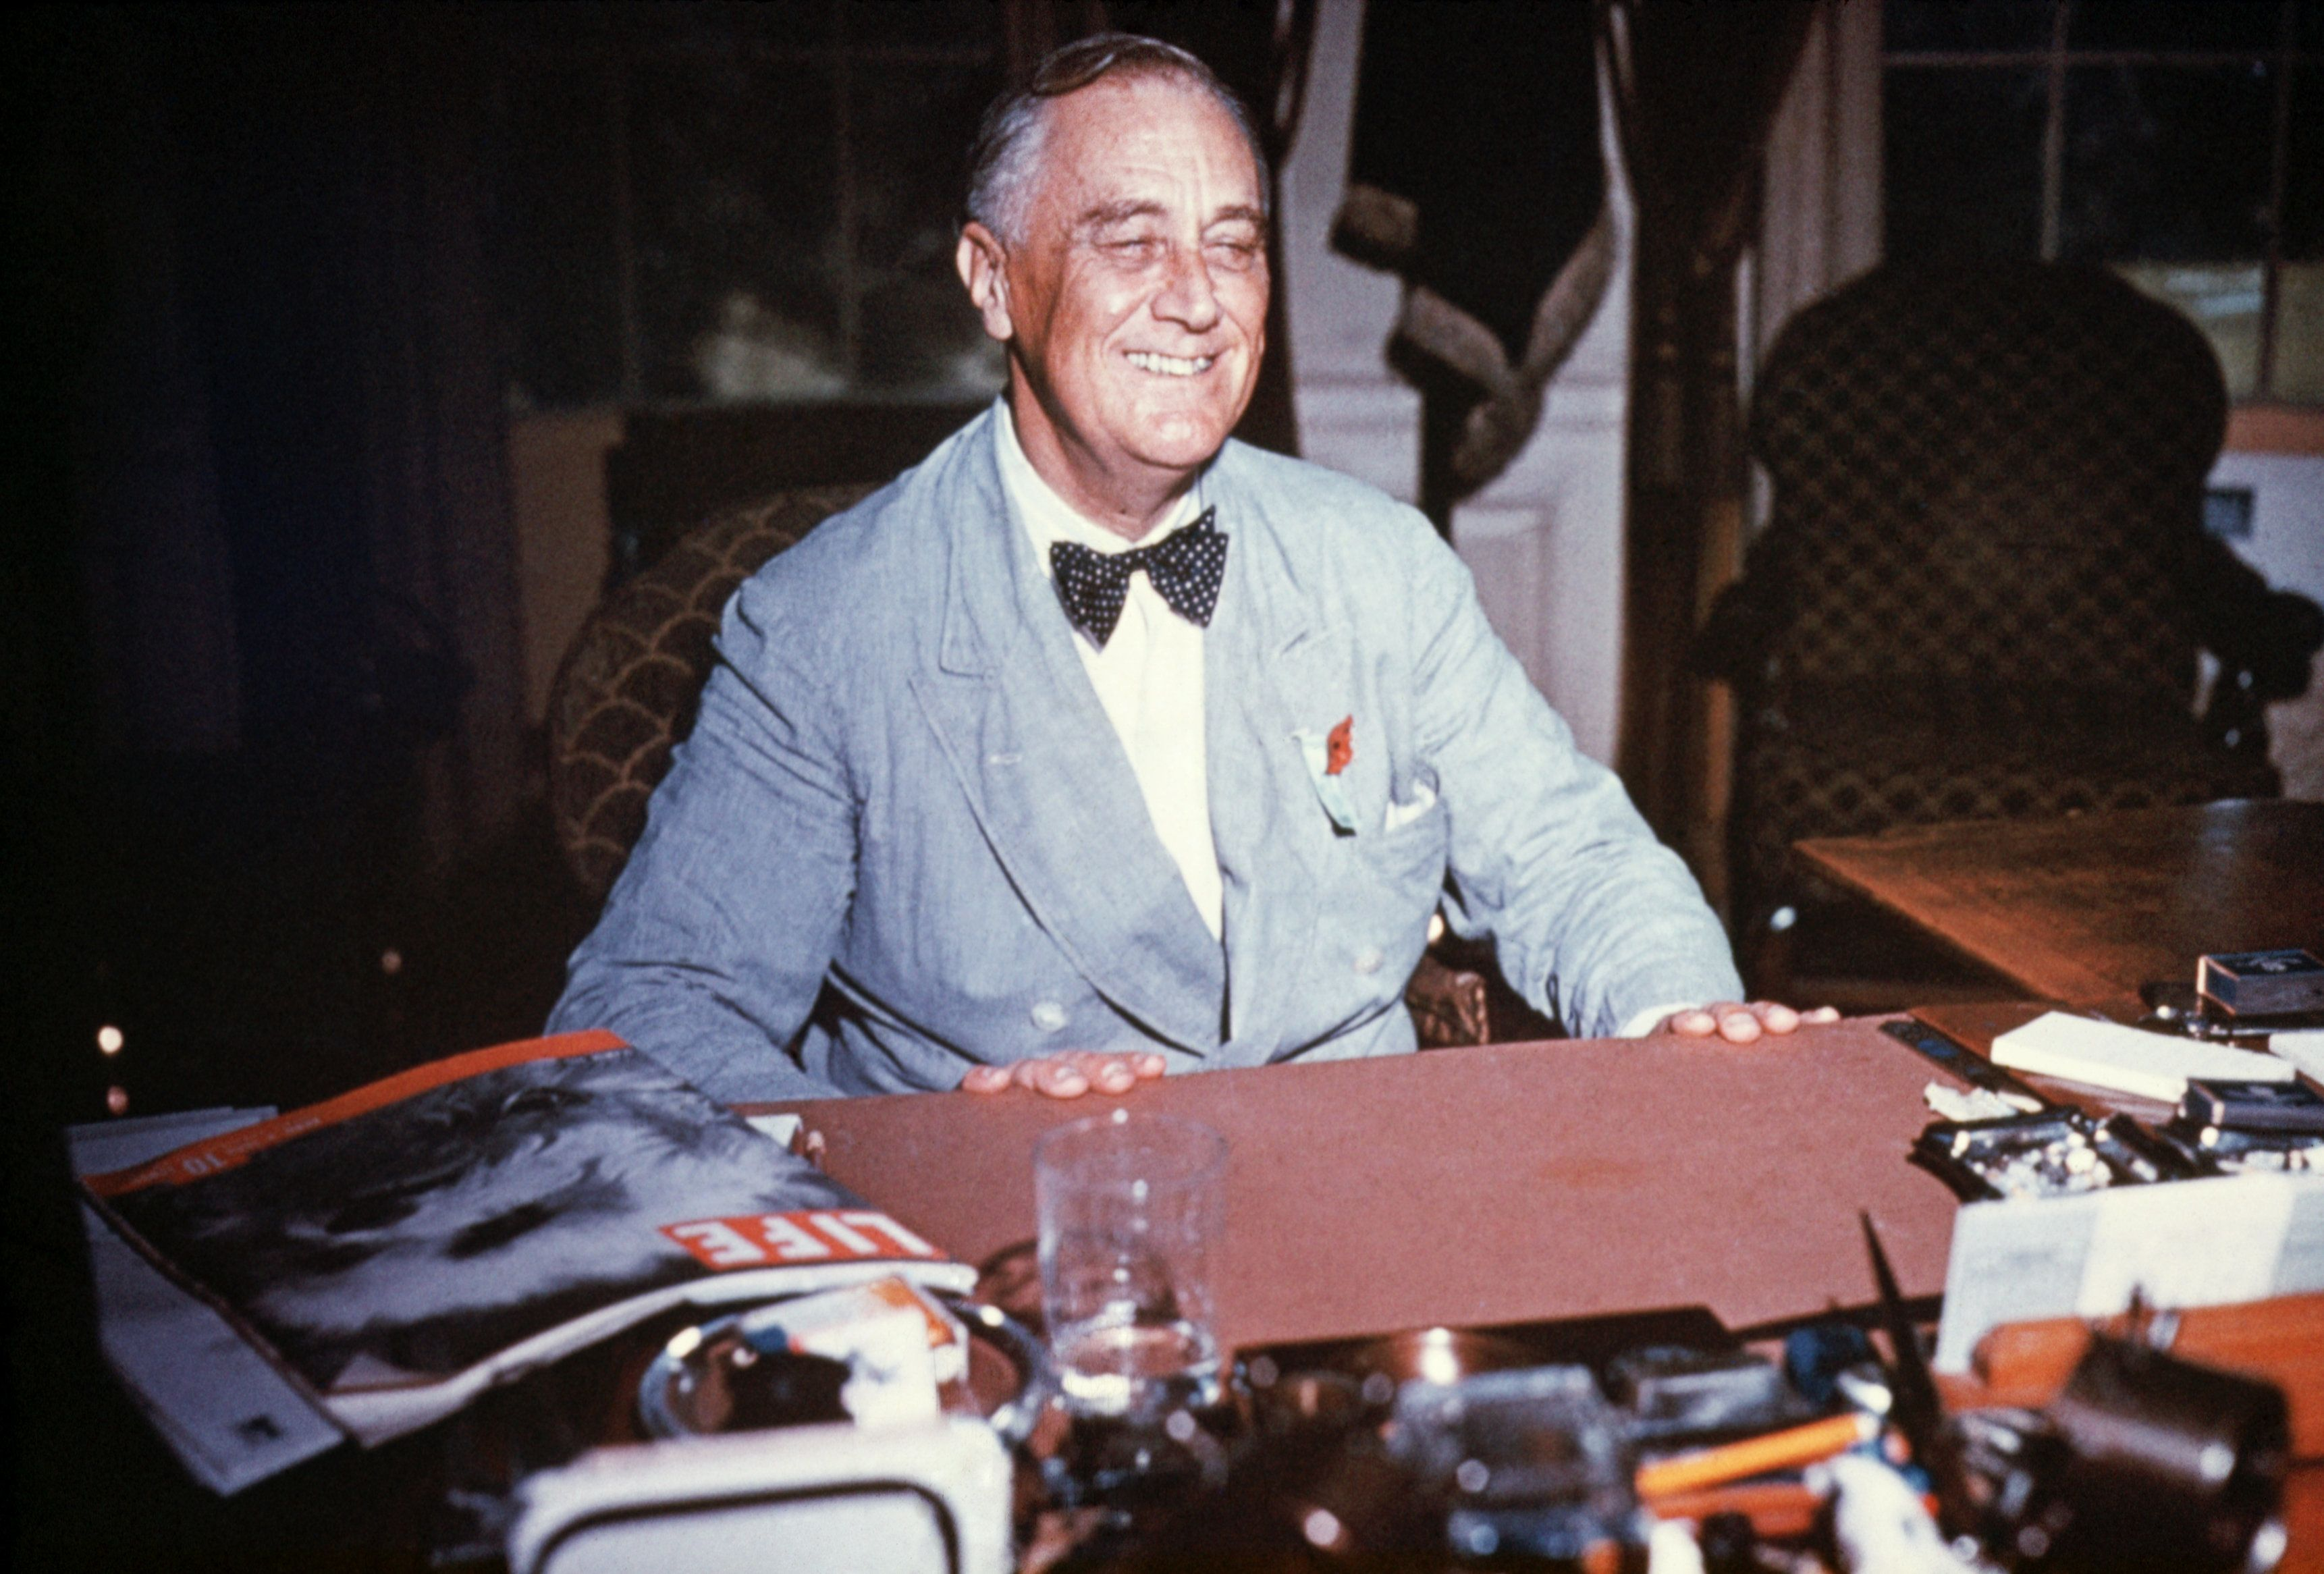 (Original Caption) Portrait of Franklin Delano Roosevelt seated at his desk, smiling. Undated color slide.